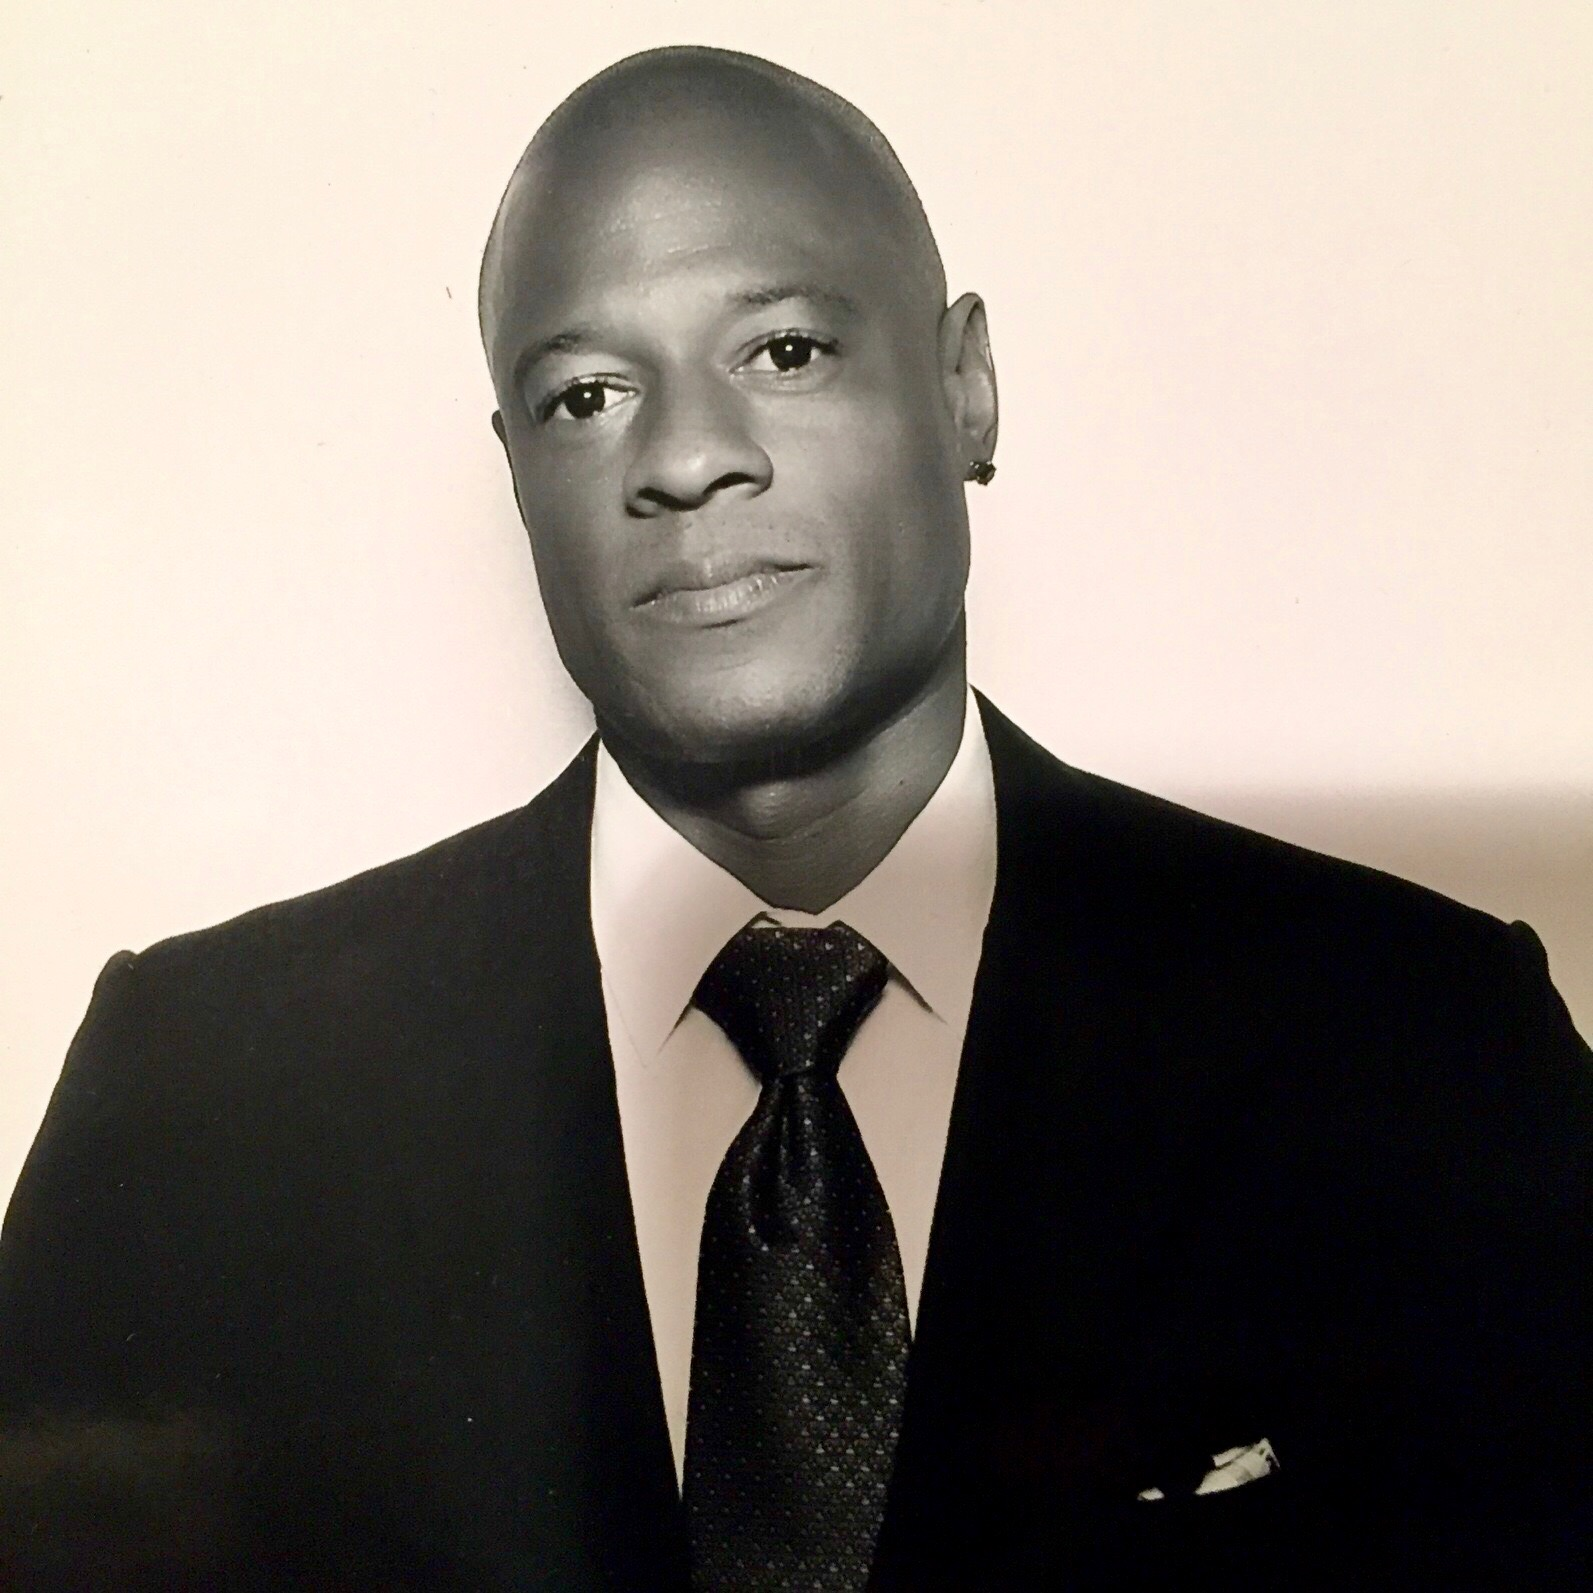 Jamal Weathers - Jamal Weathers has a diverse portfolio of business development in tech, finance, film, tv, and music. Mr. Weathers attended Grambling State University. Since 2008, Jamal has raised over $40 million in funding for several companies. He's a strategic and financial partner with Mark Wahlberg, Sean Combs aka Diddy, Yucaipa Co, and Ron Burkle in AquaHydrate. He's also a partner in Alma Nove restaurant and Wahlburgers.